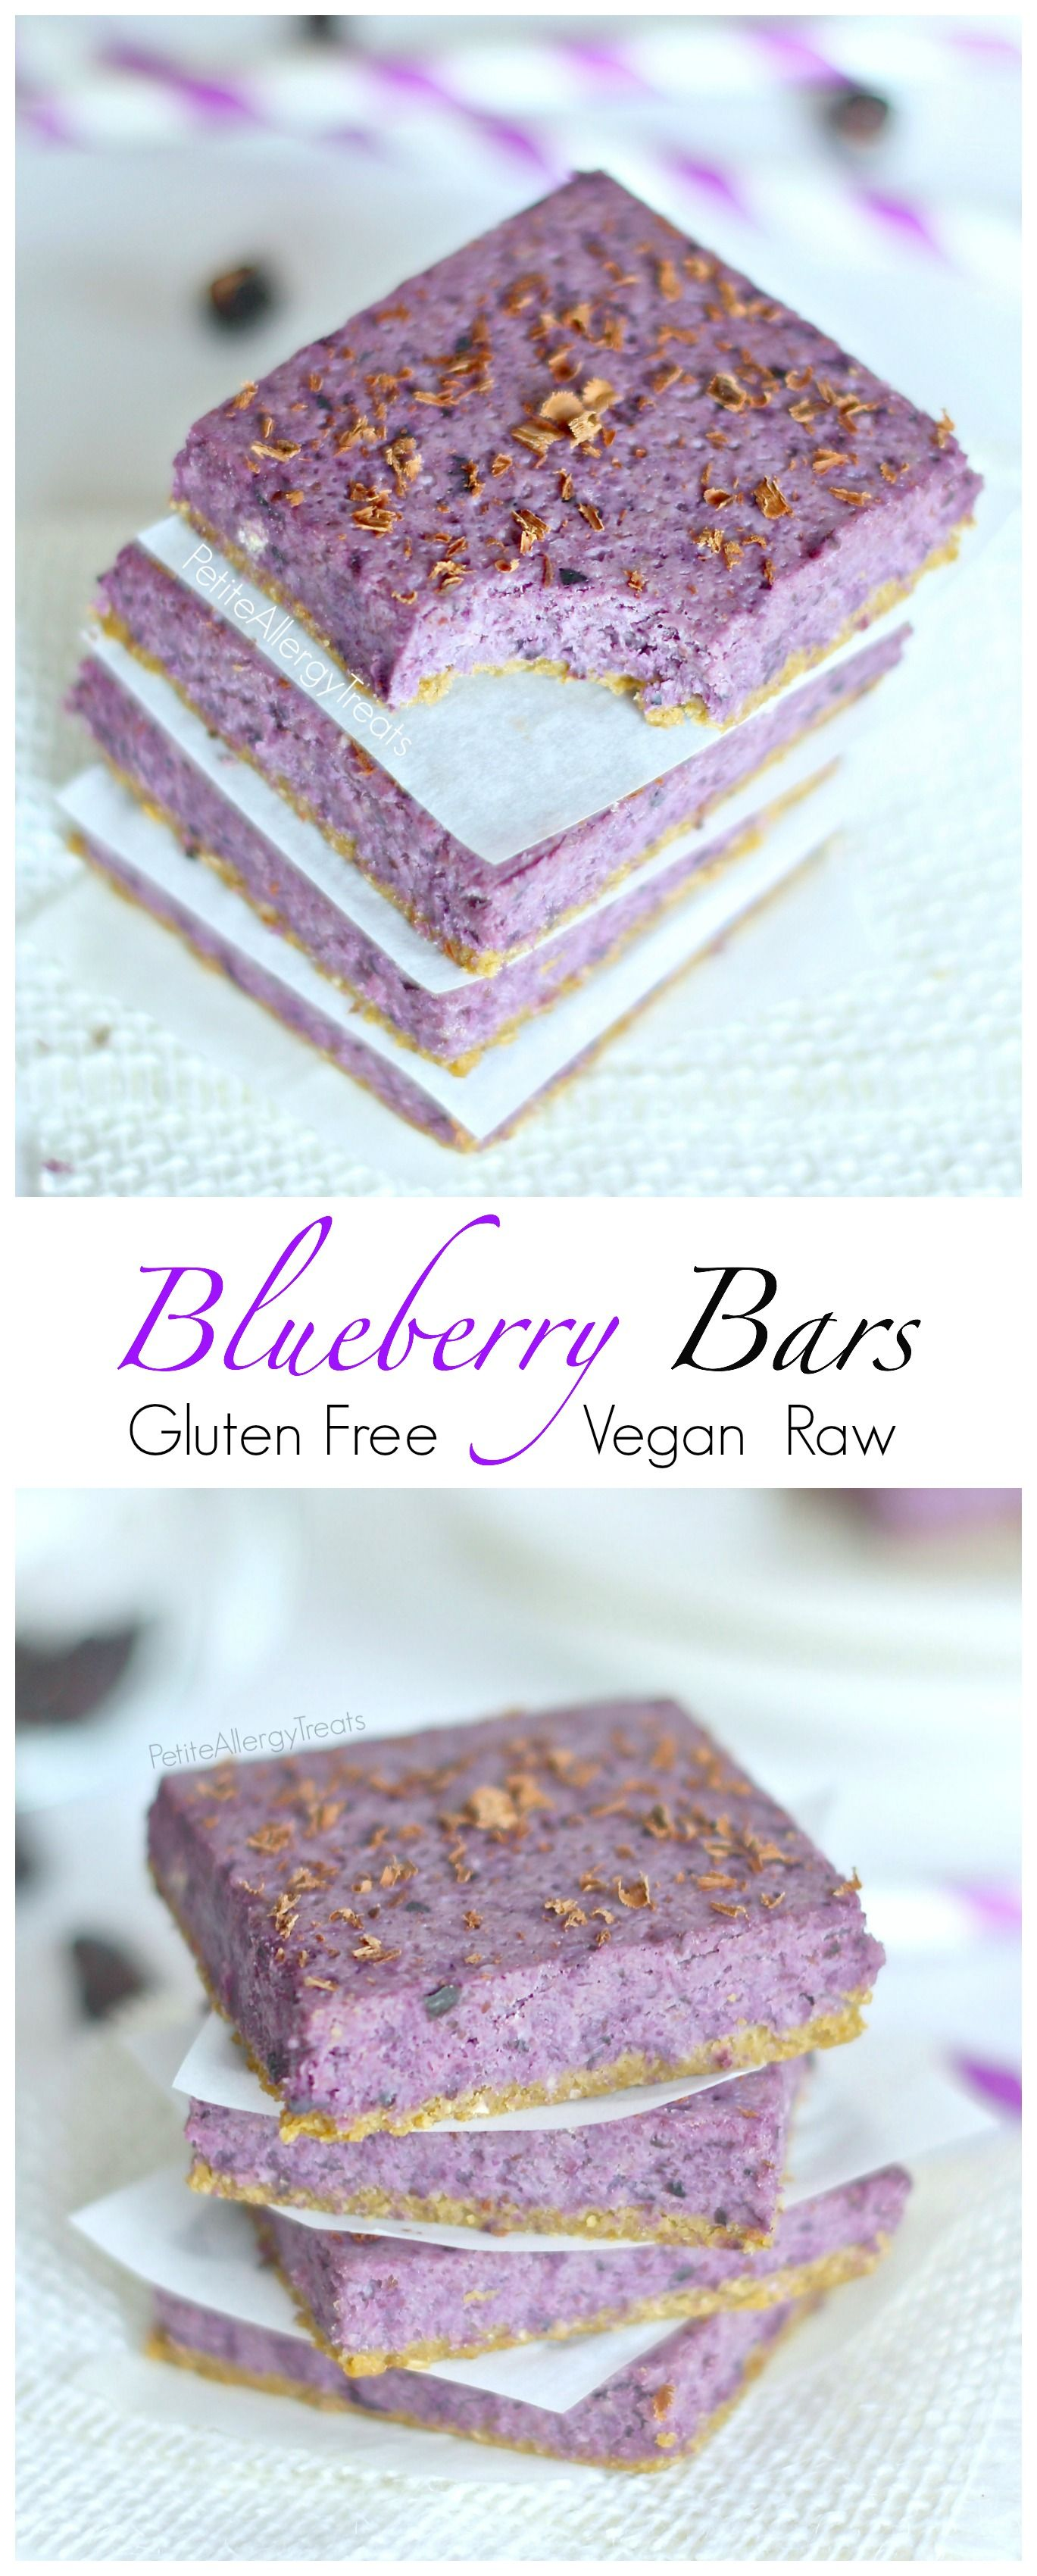 Blueberry Bars Raw Vegan Gluten Free Recipe Vegan Gluten